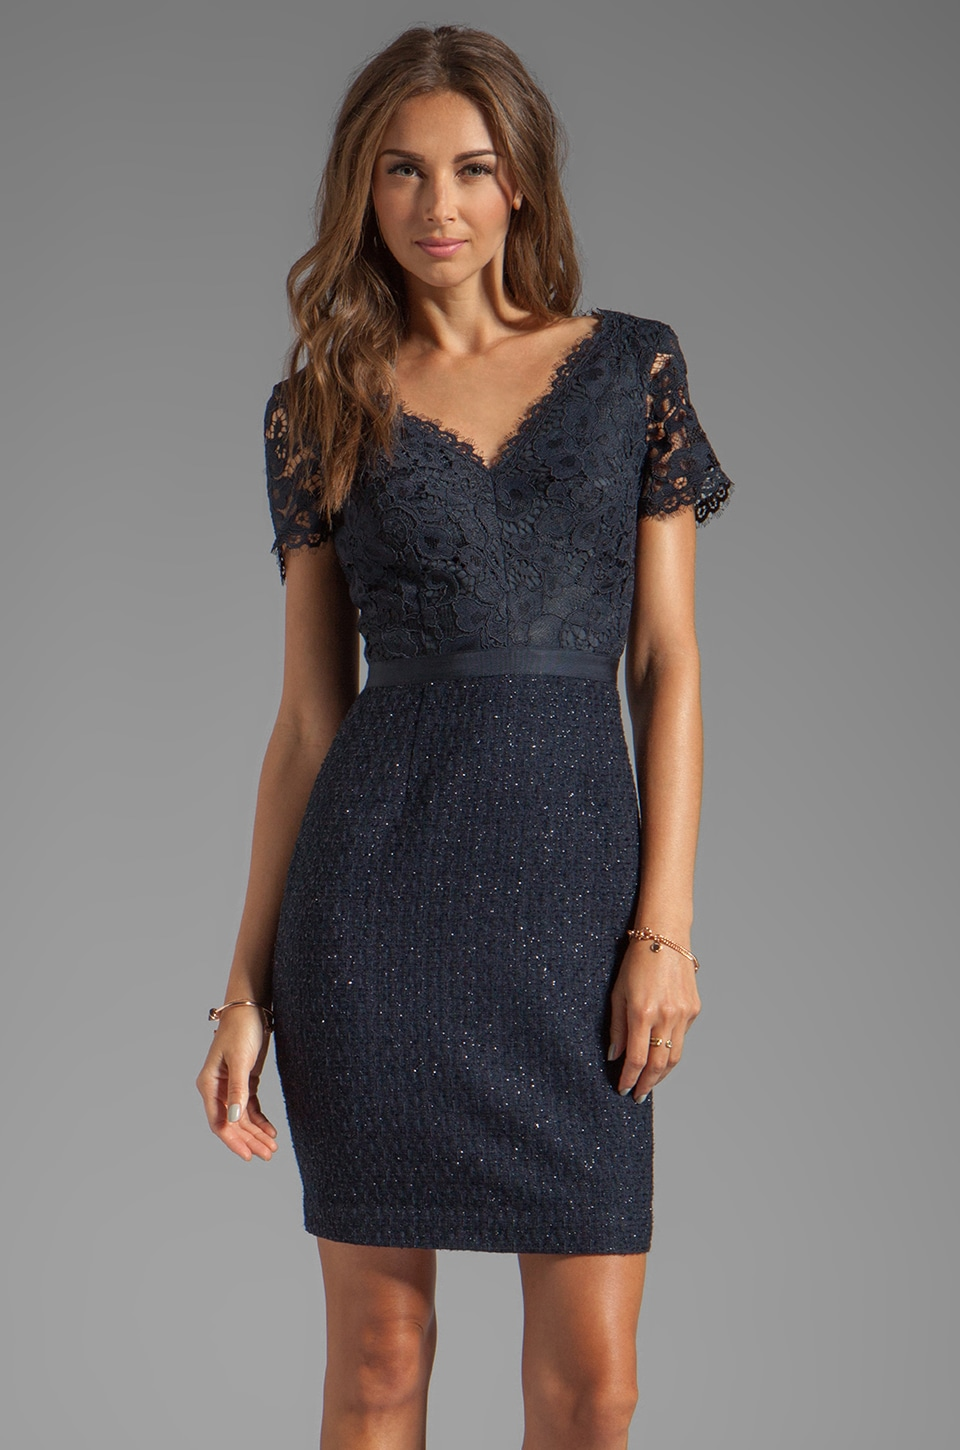 Trina Turk Keirnan Dress in Midnight